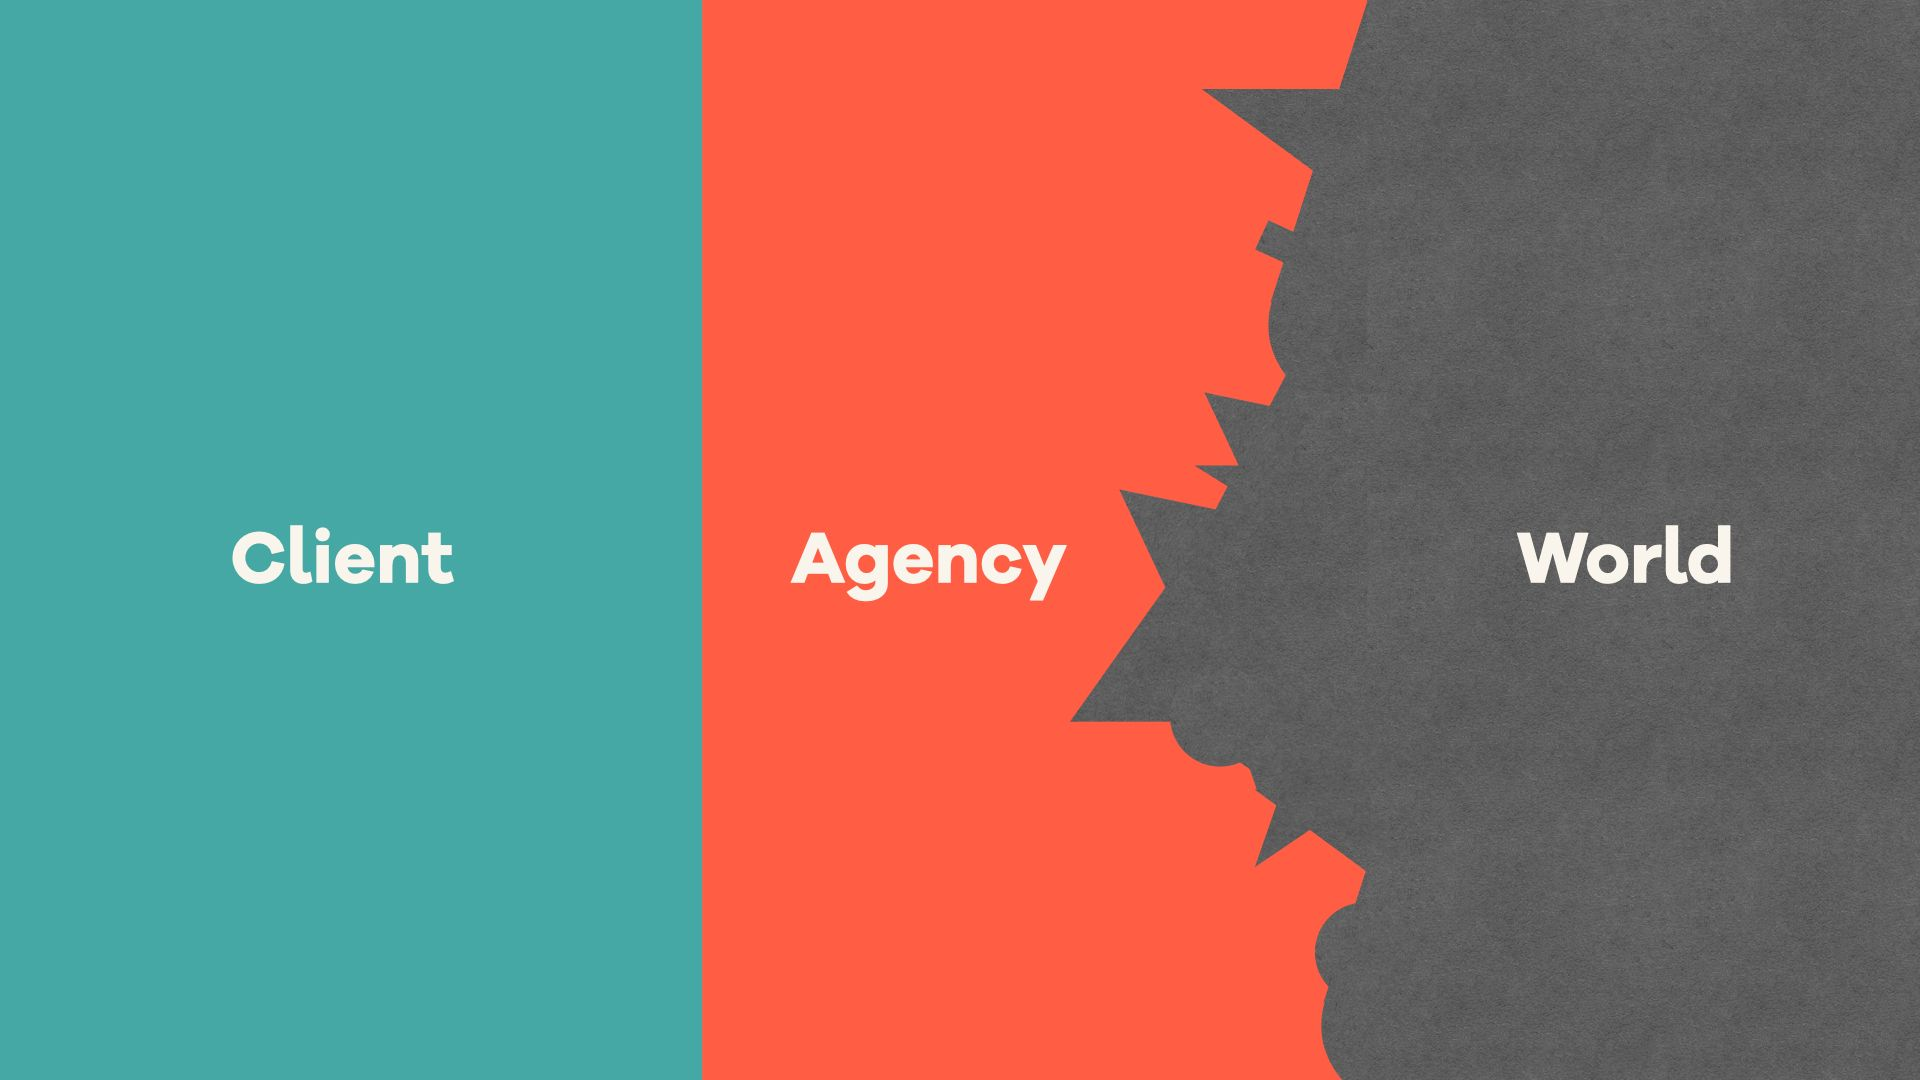 Diagram showing a square box on the left marked 'client', a box with chaotic zig zag edges on the right marked 'world' and the agency shown as being what fills the gap between the two